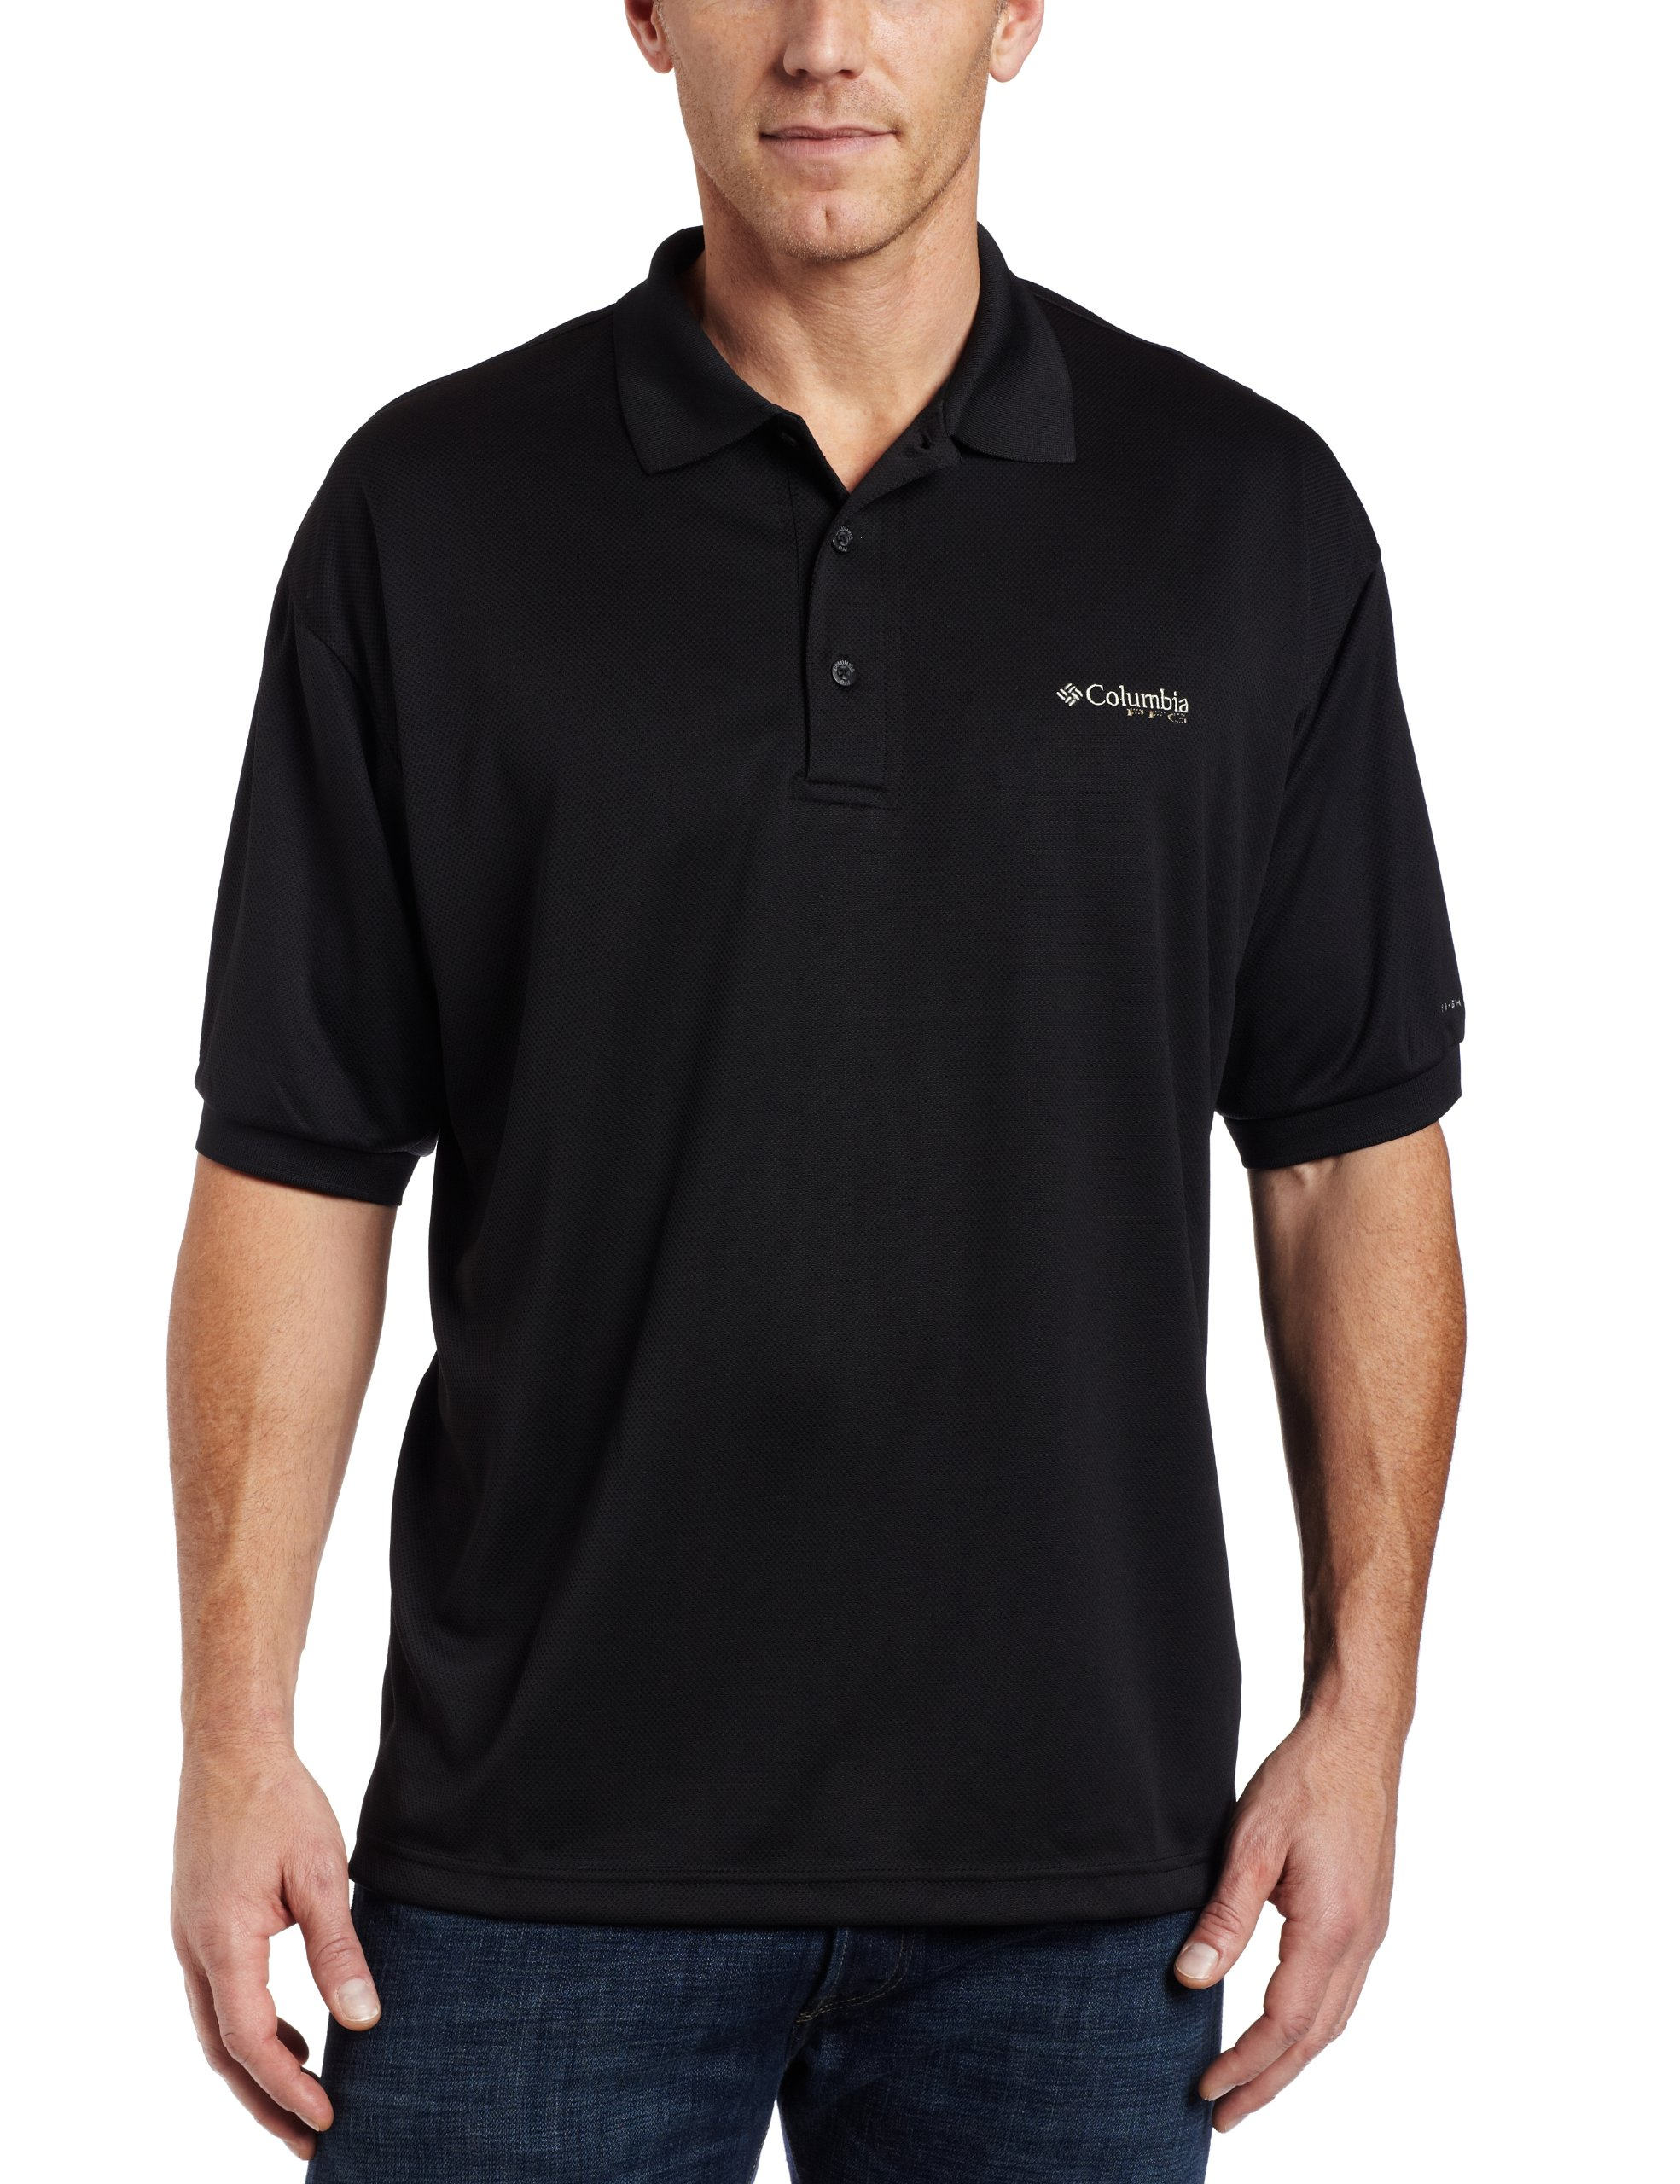 Columbia Men's Perfect Cast Polo, Black, Medium